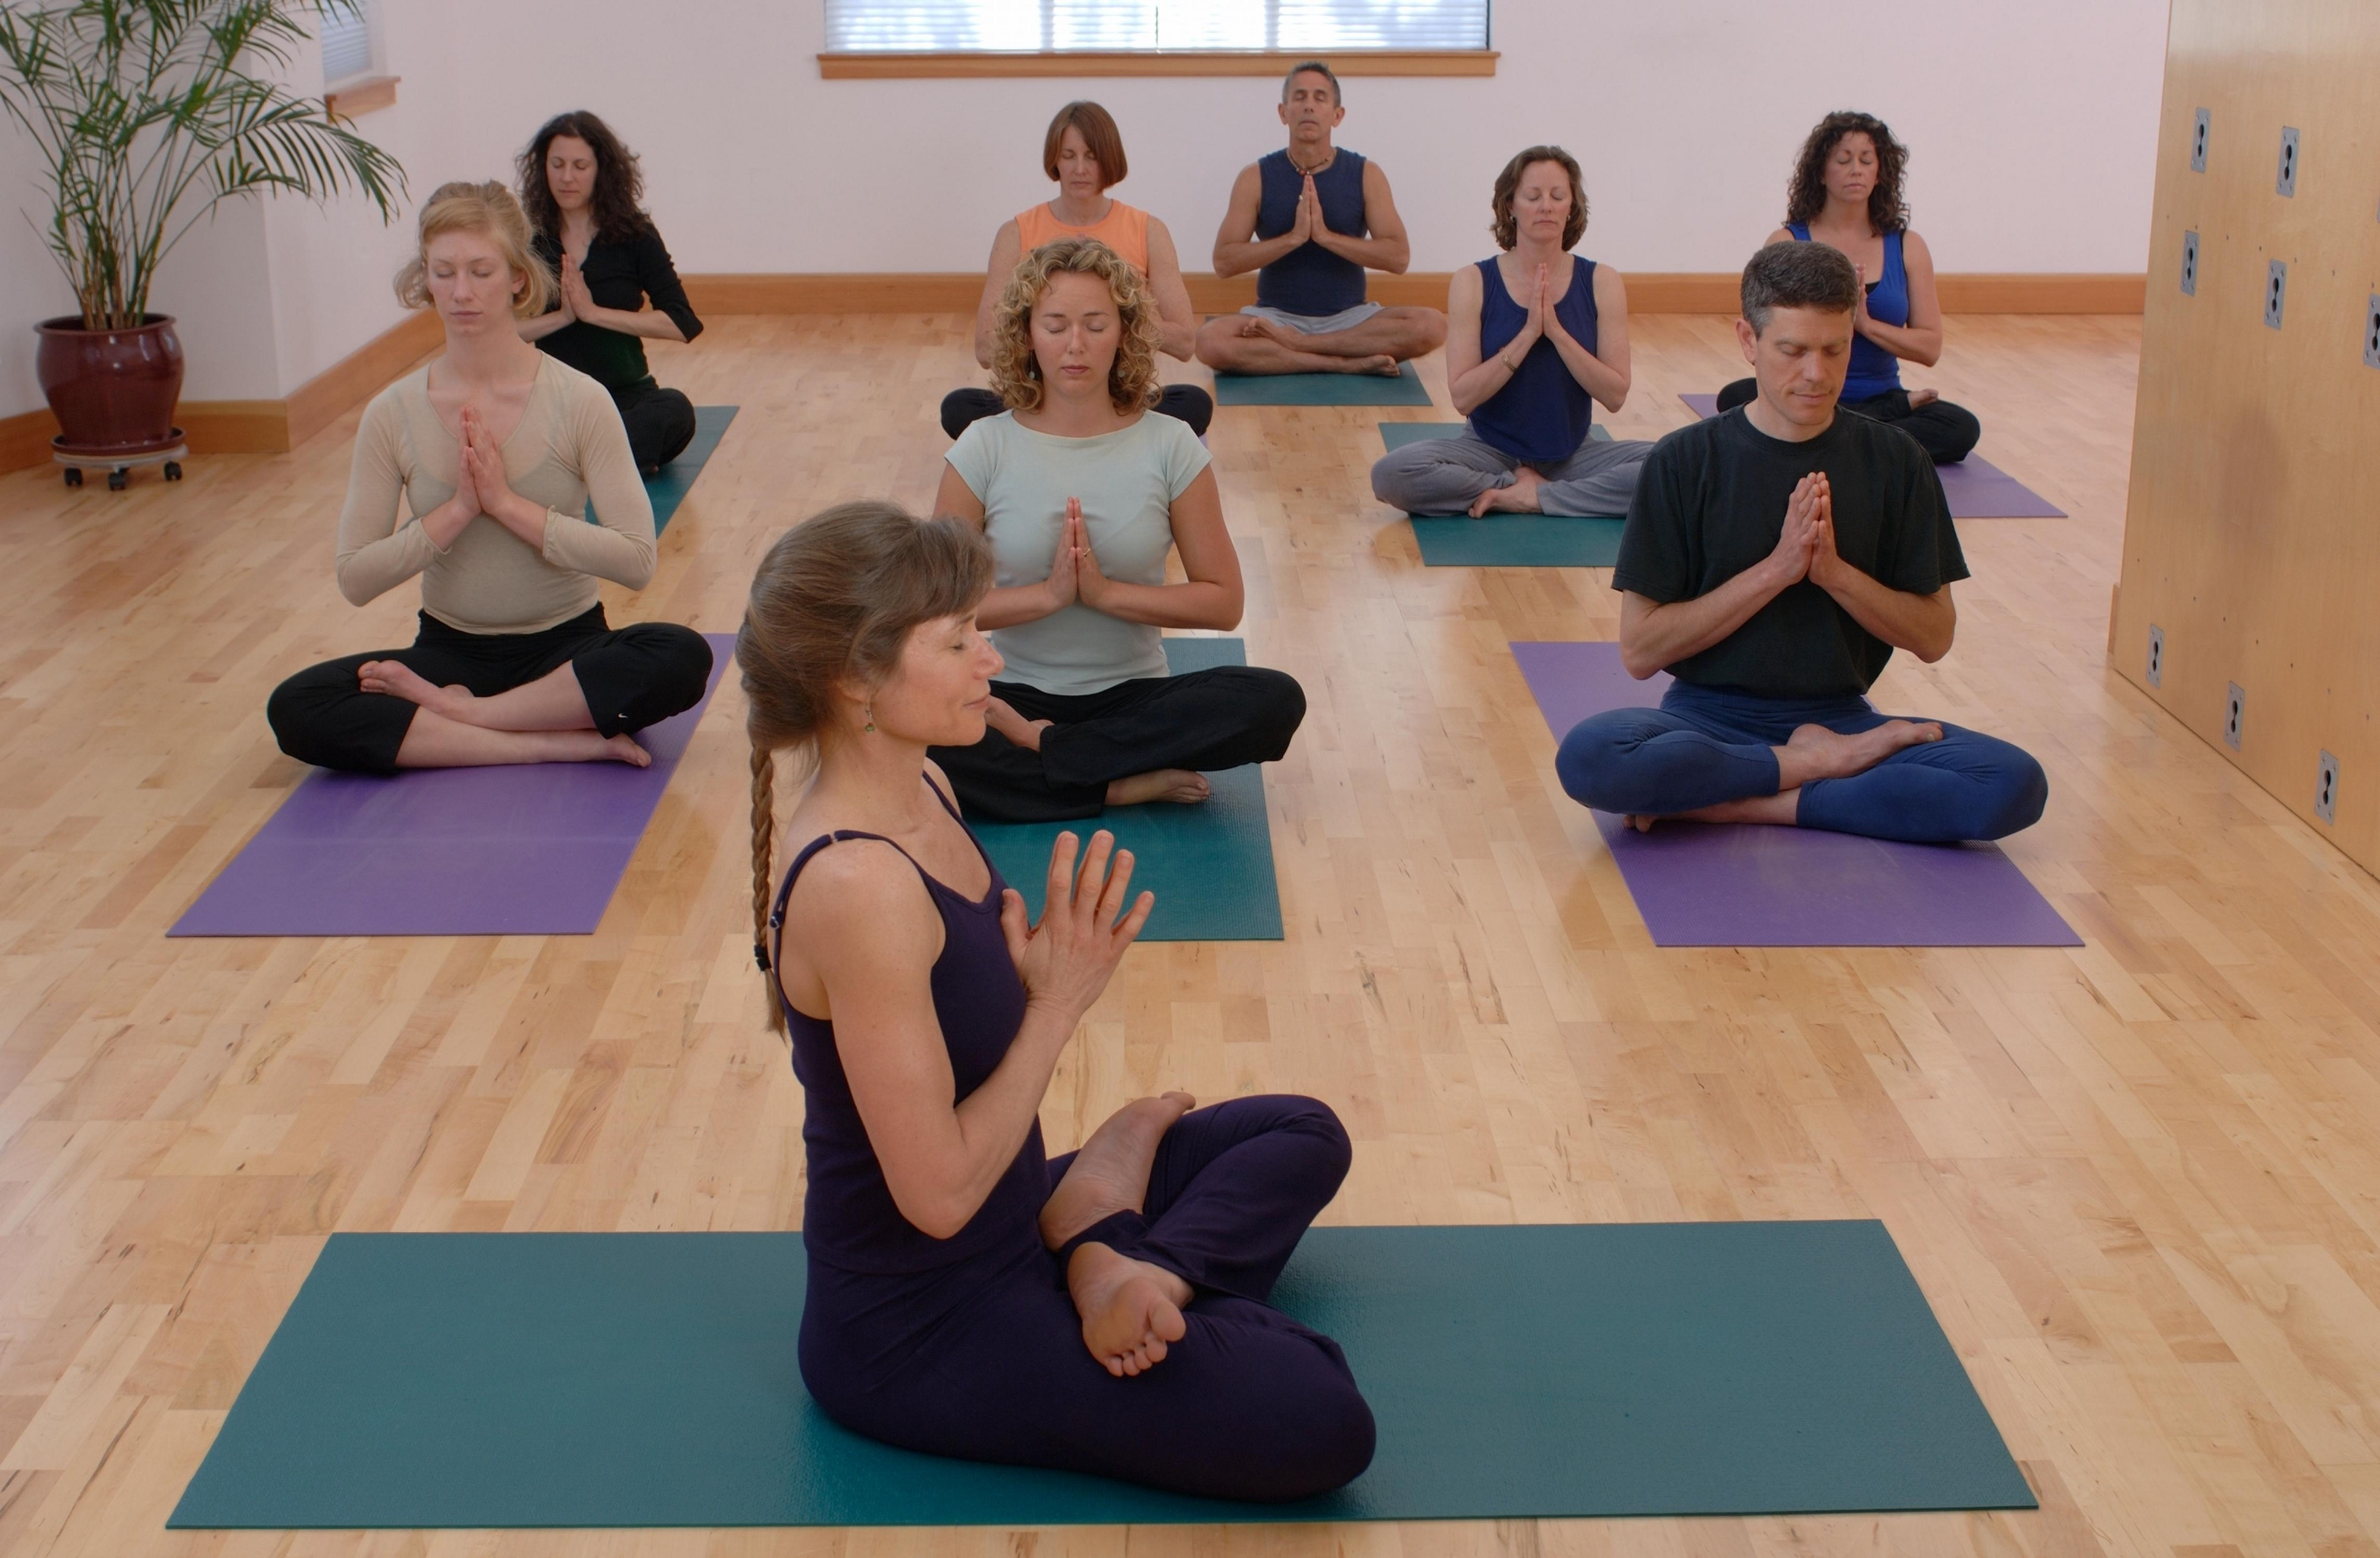 Are You Looking For Yoga Studio Software By My Best Studio Medium